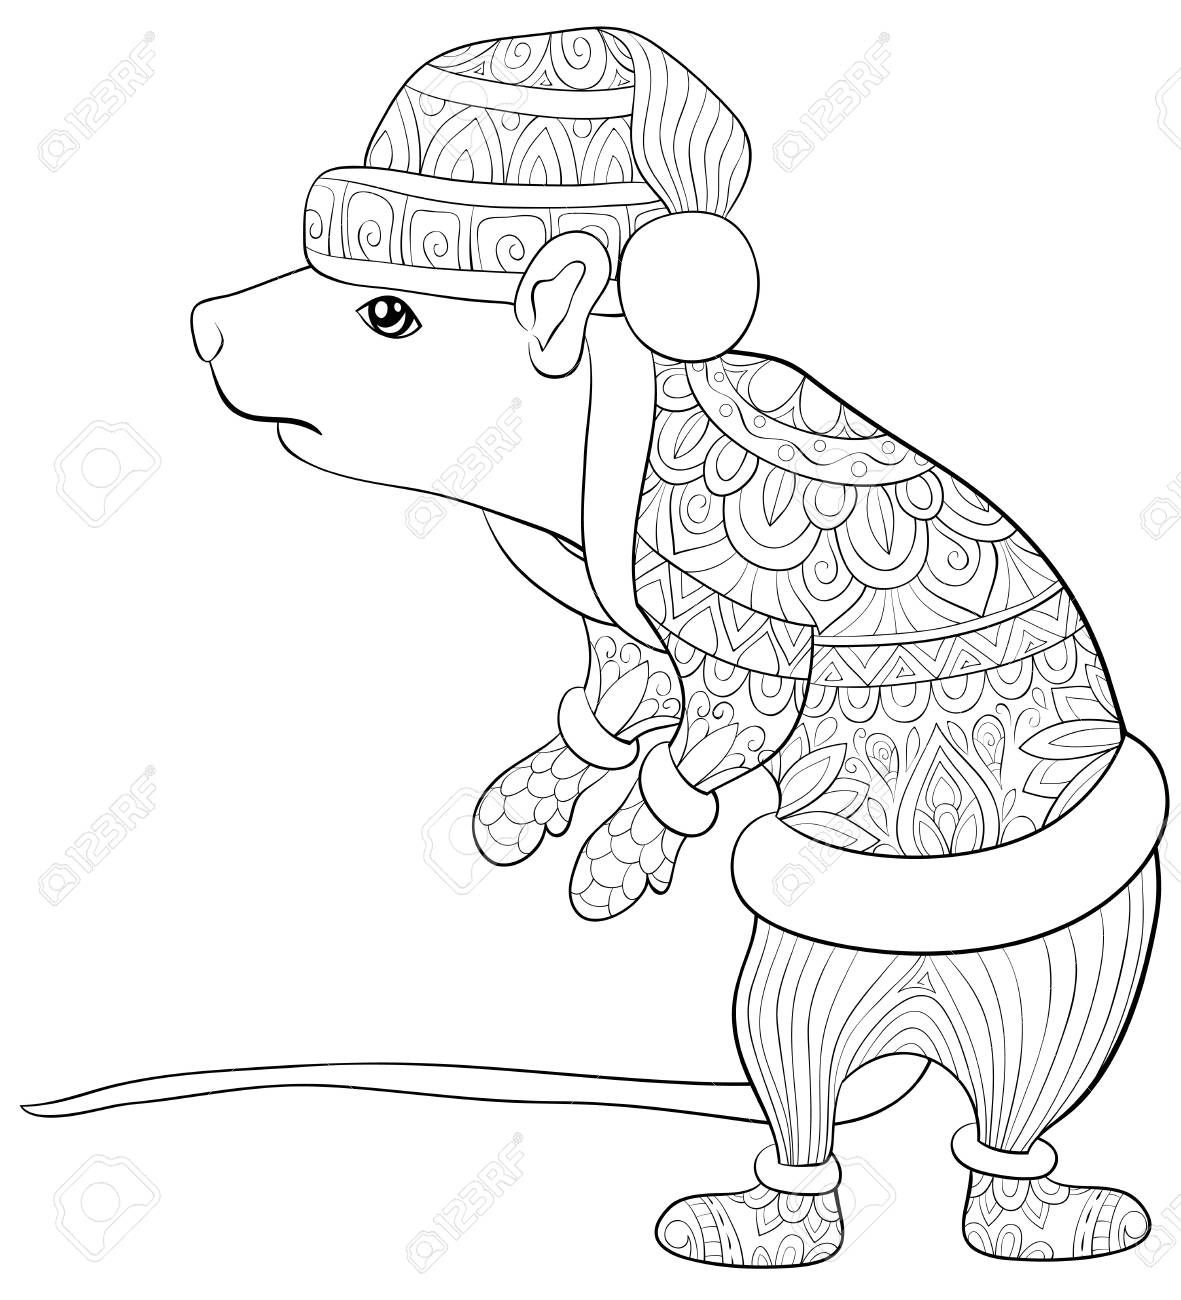 Christmas Boots Drawing.A Cute Rat Wearing A Christmas Cap Boots Scarf Mittens With Ornaments